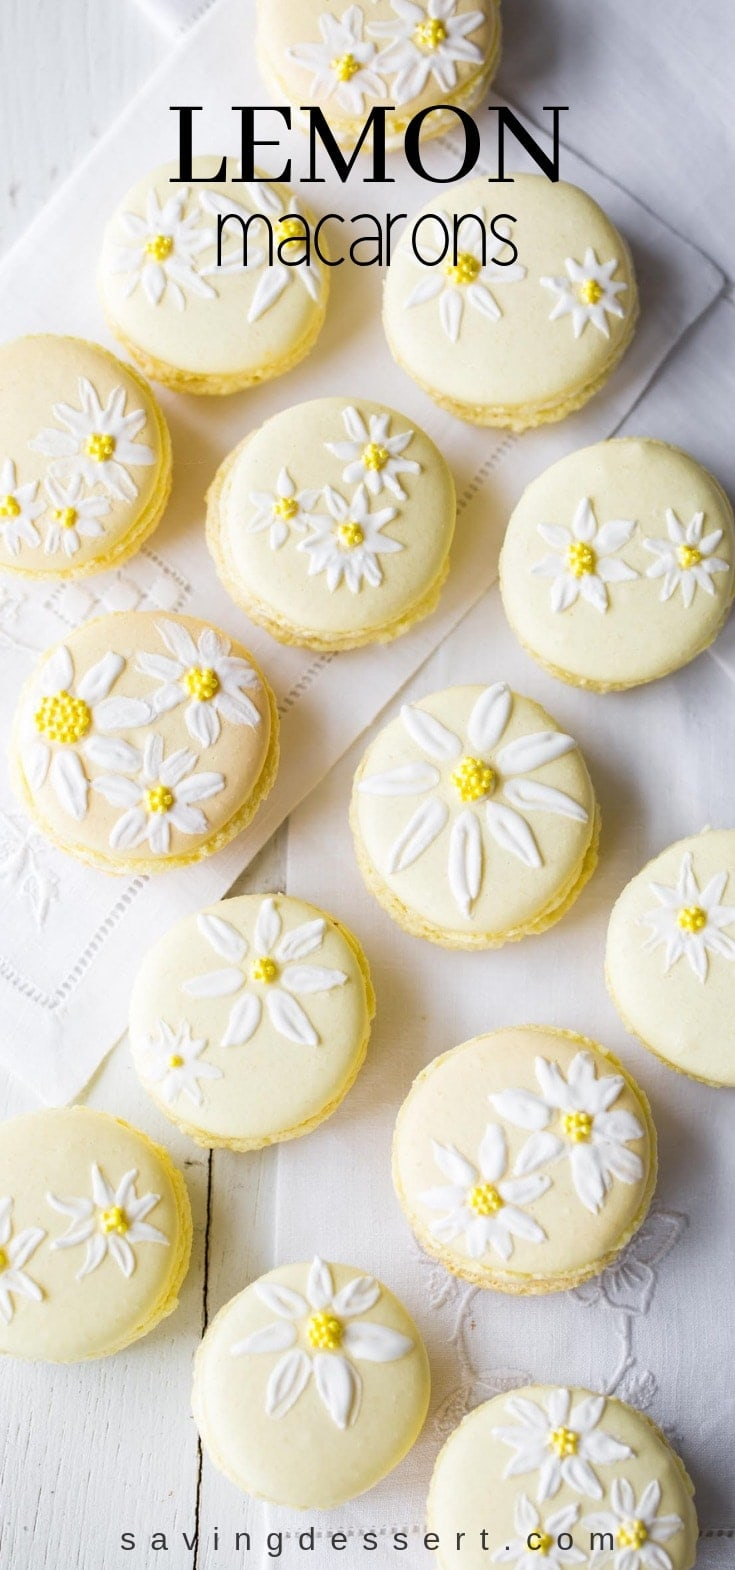 Lemon Macarons - brighten your day with these delicious cookies decorated with a few brushstrokes of royal icing and sprinkles to help usher in the first warm days of spring. #macarons #lemon #cookies #meringuecookies #lemonmacarons #Italianmacarons #decoratedmacaron #macaron